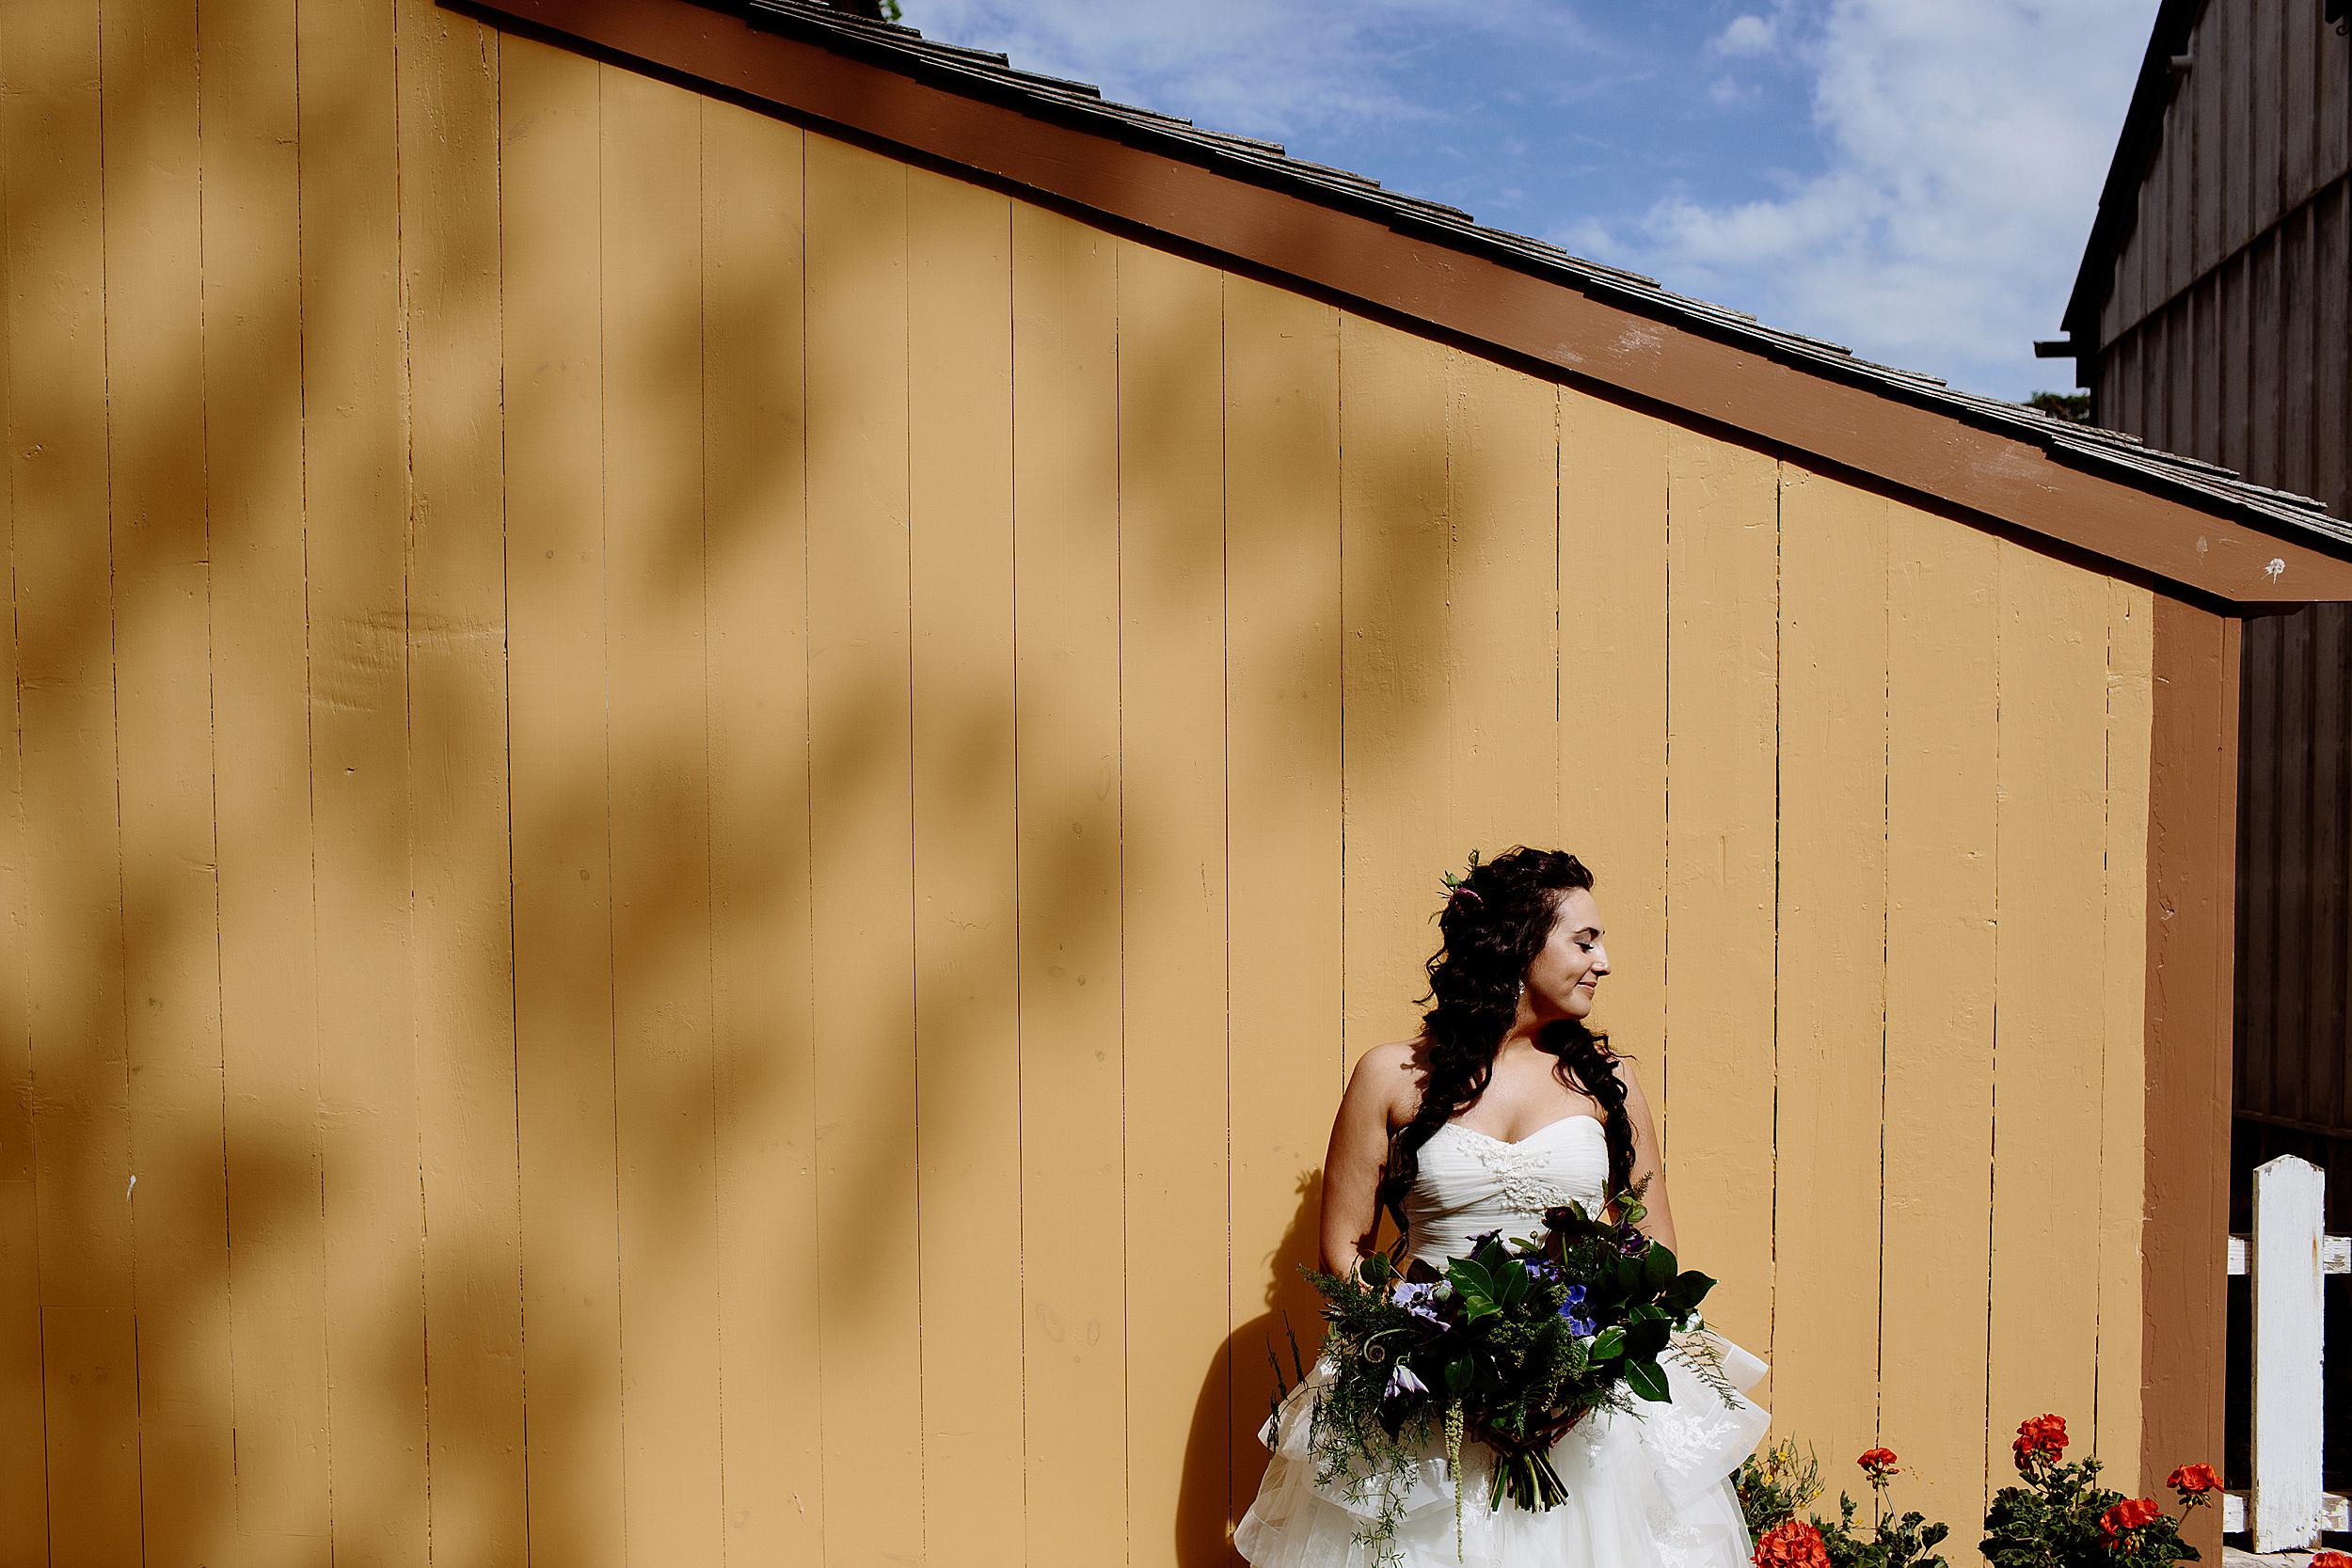 landis_valley_museum_wedding_with_love_and_embers-005.JPG